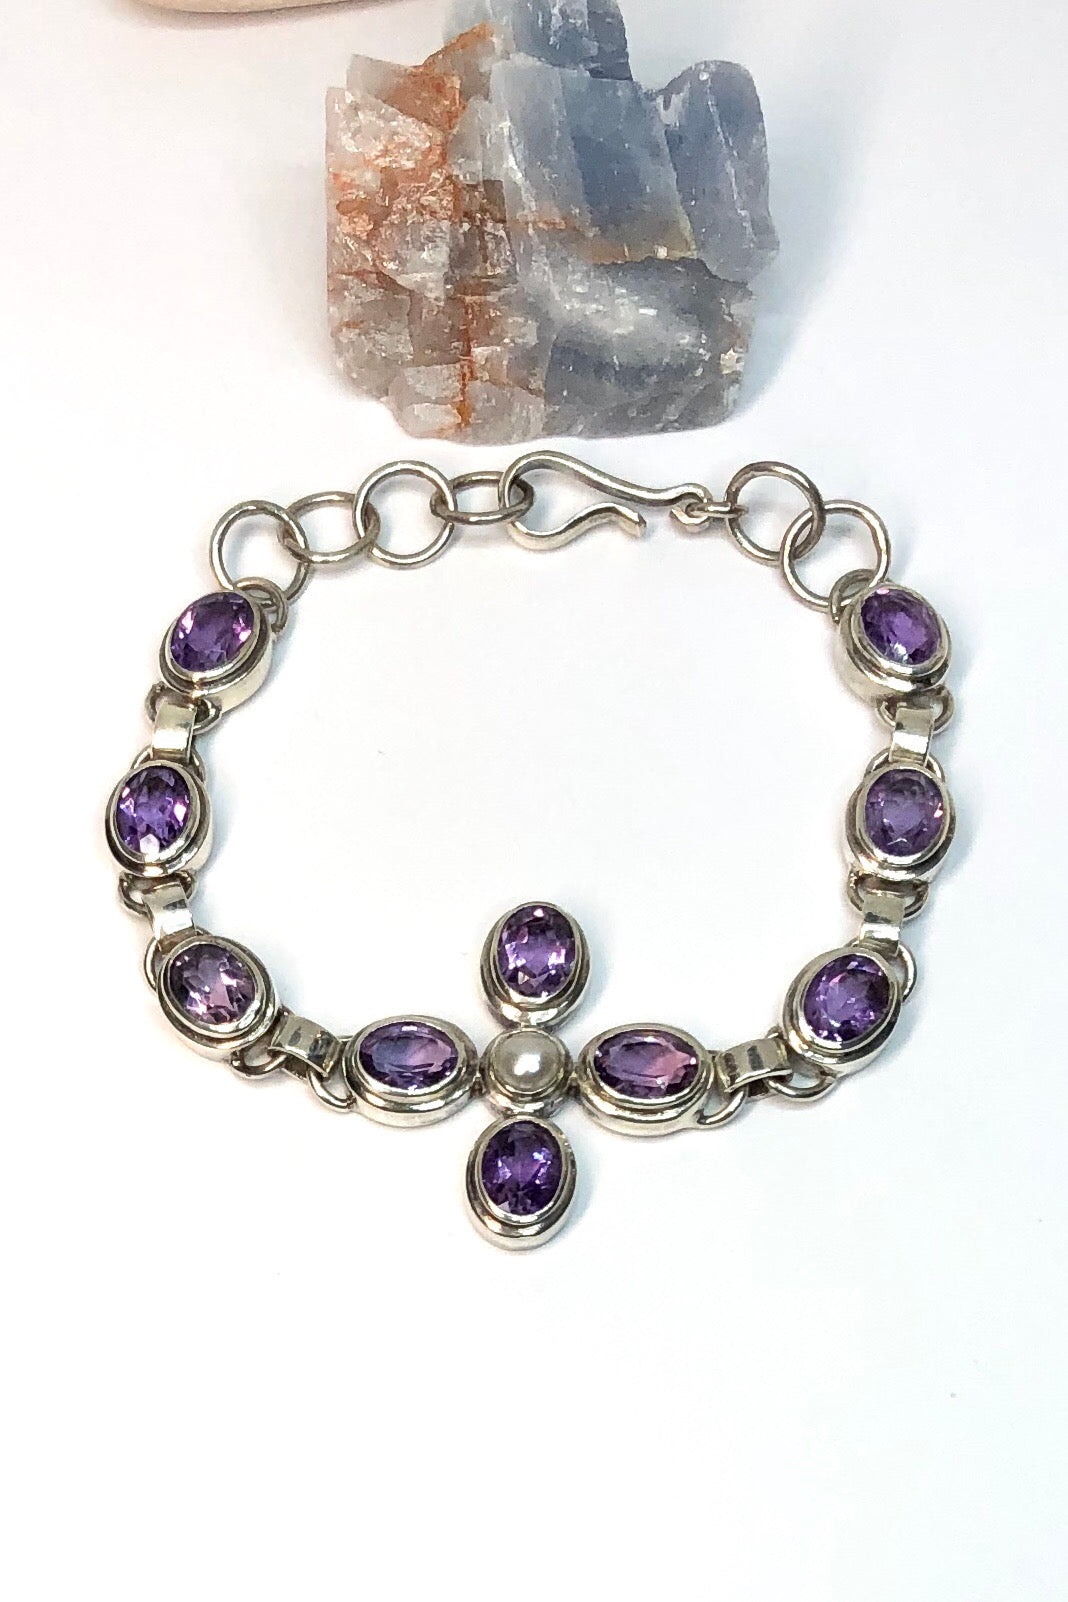 each faceted Amethyst gemstone in the Bracelet Amethyst Pearl has been cut to enhance the gorgeous mauve colour. Each of the ten stones  has been individually set and rim set into 925 silver.  The centre piece is a flower with a pearl centre.